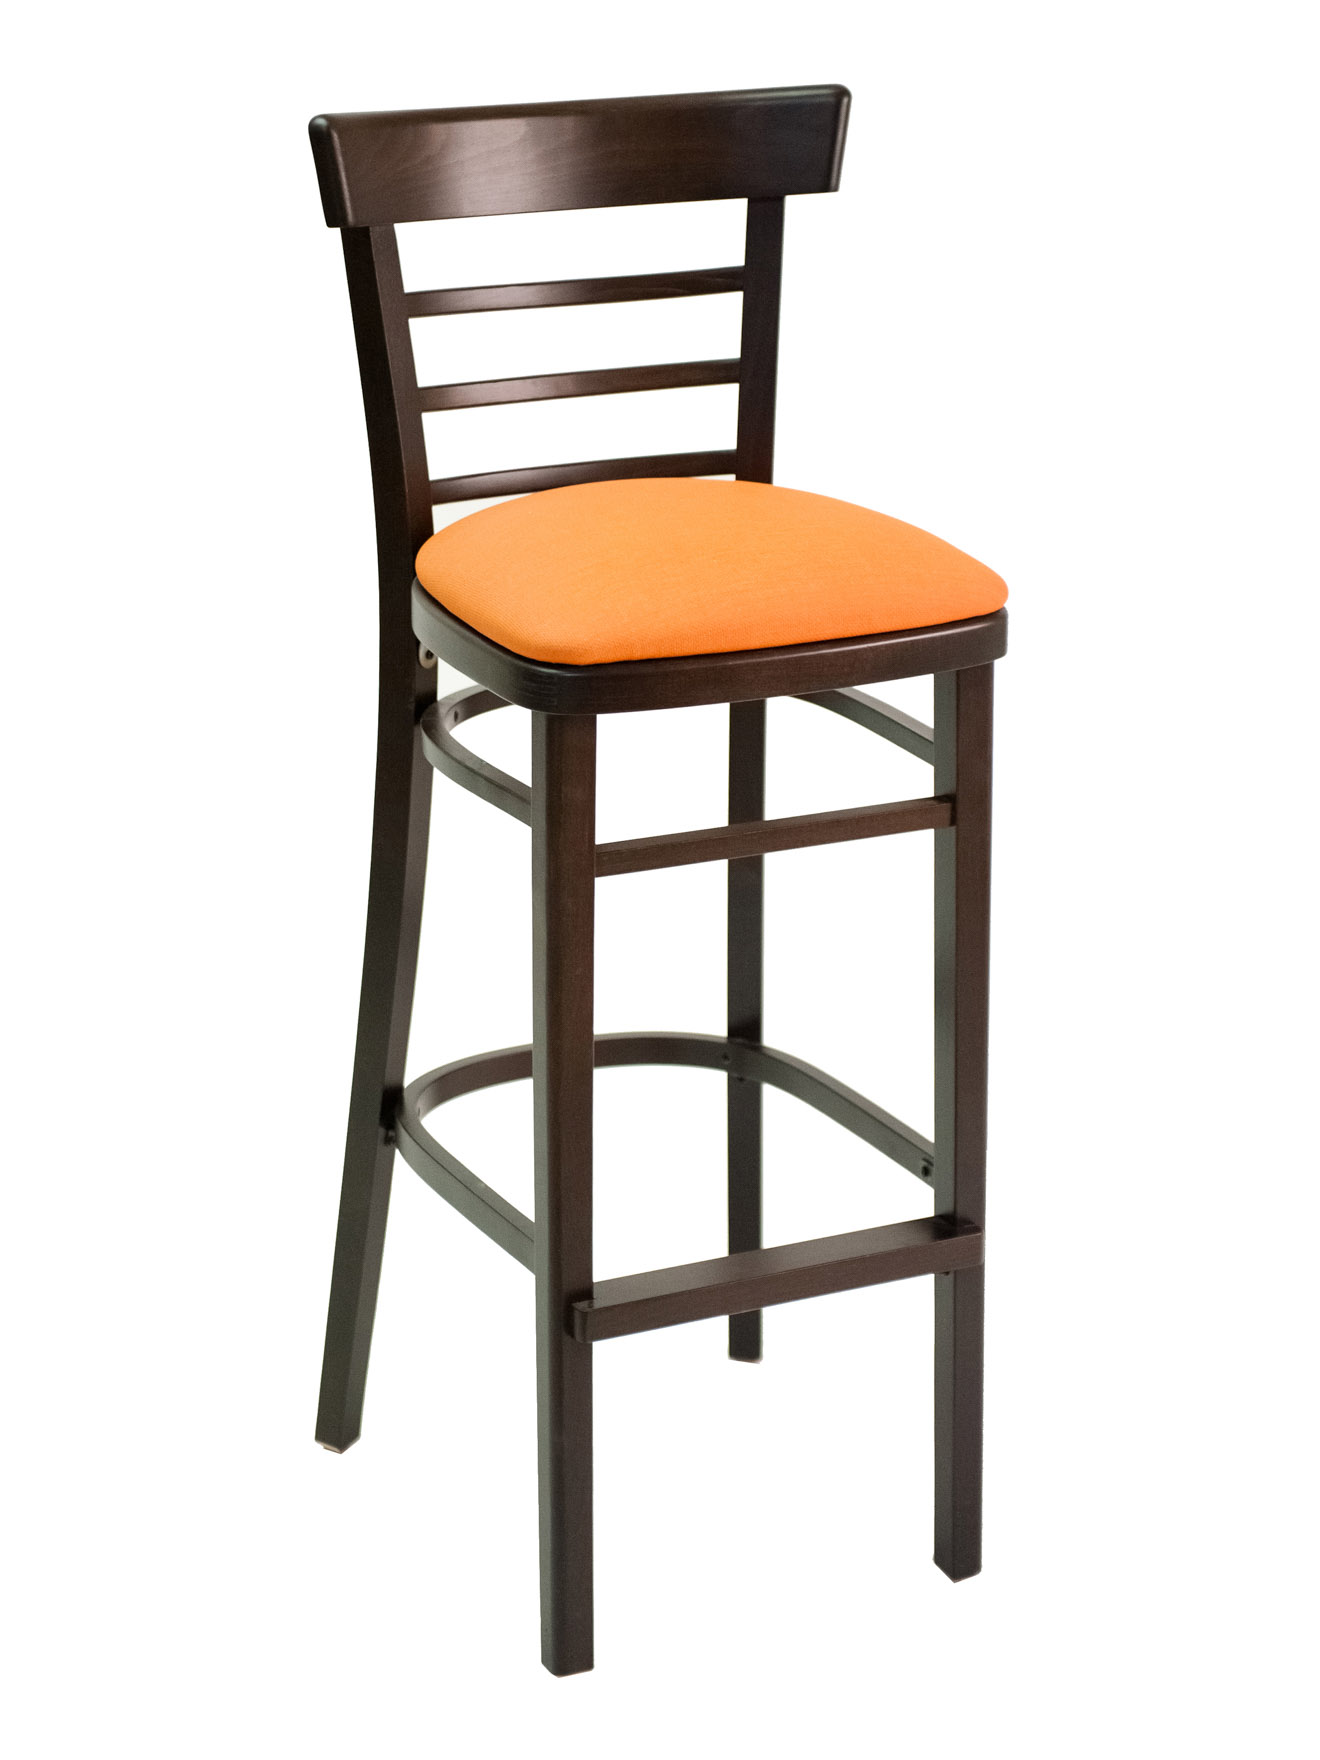 Tremendous Economy Ladder Back Bar Stool Ncnpc Chair Design For Home Ncnpcorg